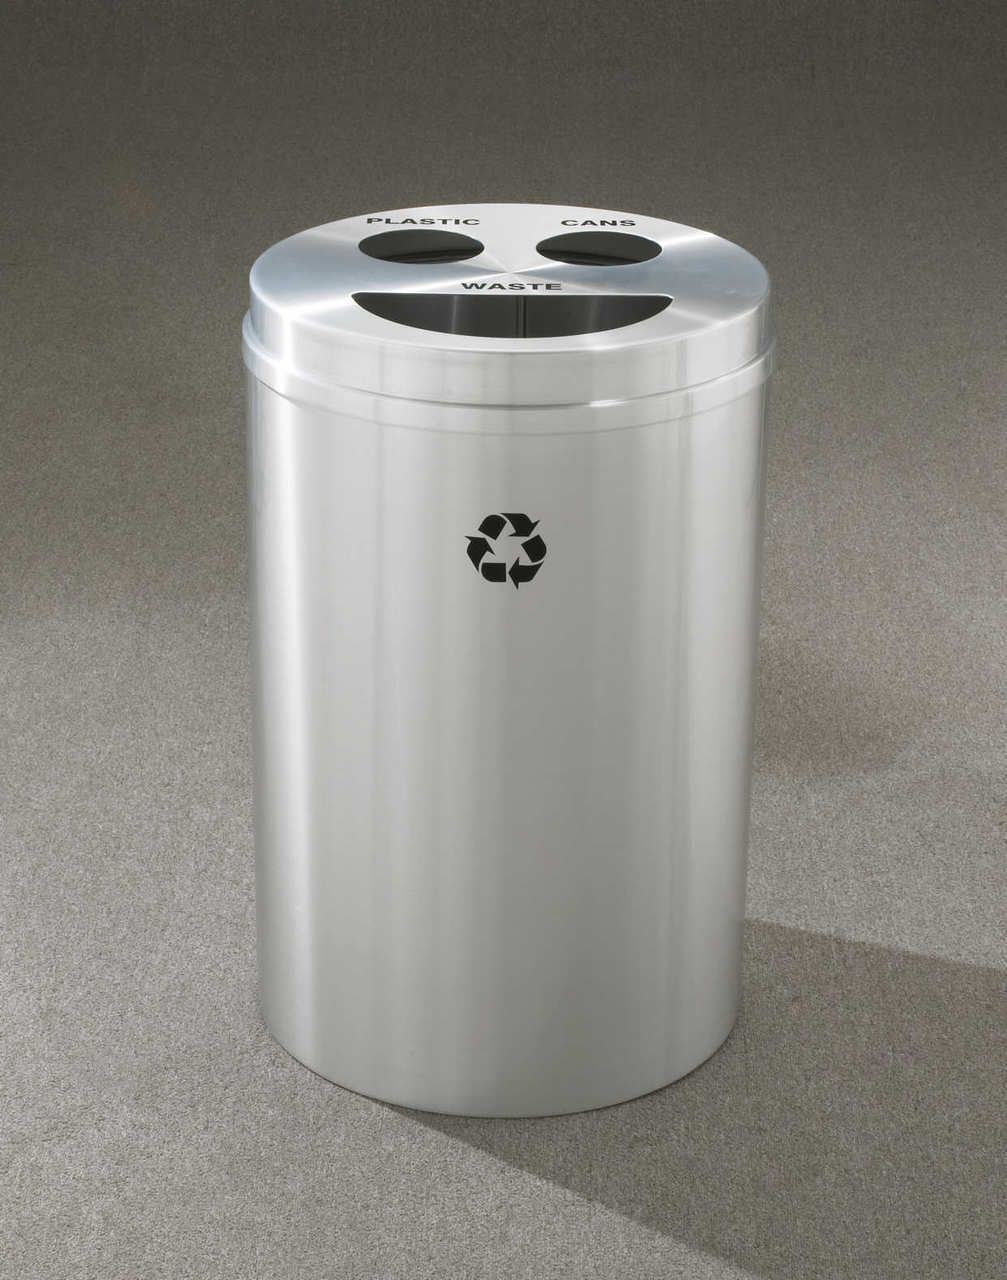 33 Gallon Glaro 3 In 1 Recycle Bin W Plastic Liner Bct 2032 29 Colors 4 Lid Styles In 2020 Recycling Bins Trash And Recycling Bin Recycle Trash